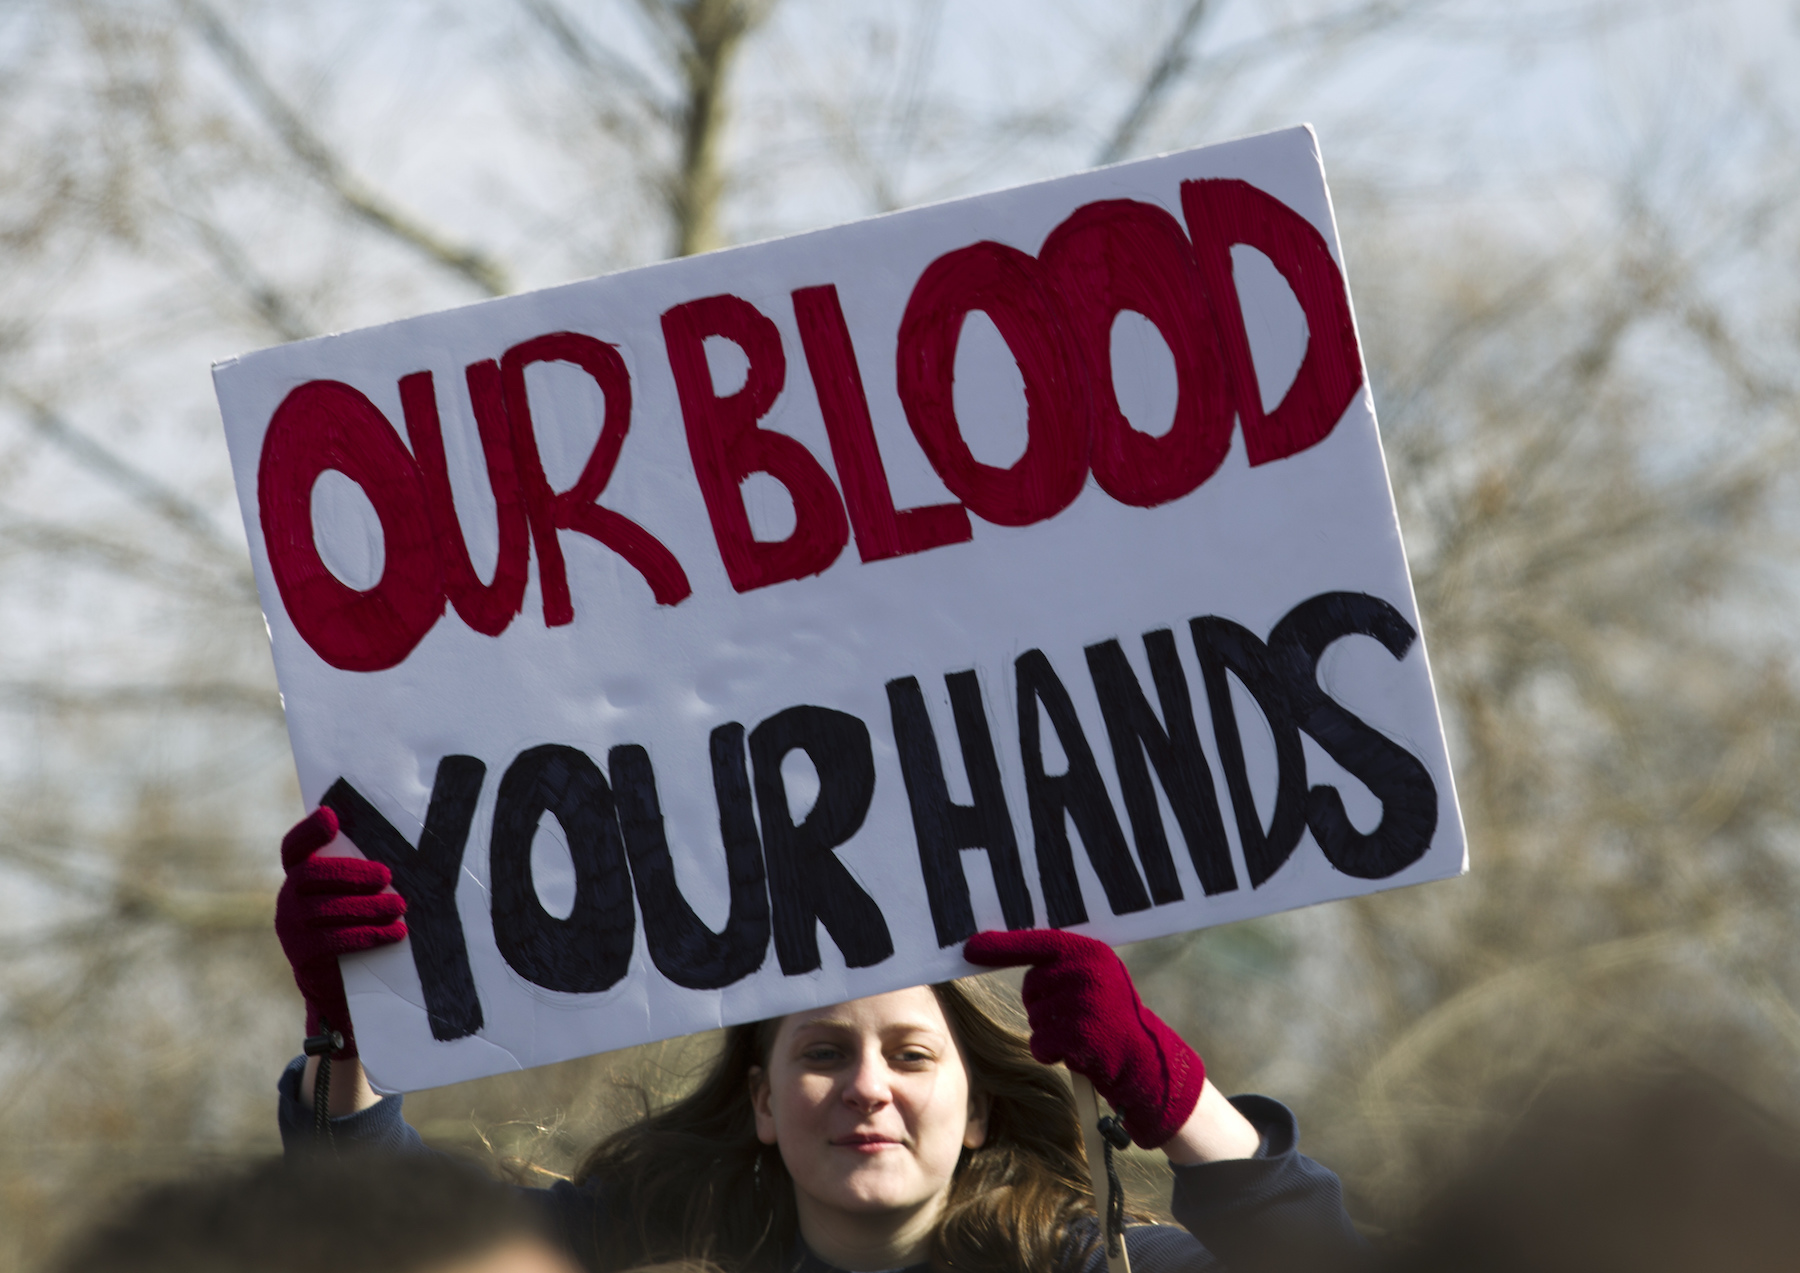 <div class='meta'><div class='origin-logo' data-origin='AP'></div><span class='caption-text' data-credit='AP Photo/Jose Luis Magana'>Students hold up their signs during a rally asking for gun control outside of the U.S. Capitol building, in Wednesday, March 14, 2018, in Washington.</span></div>